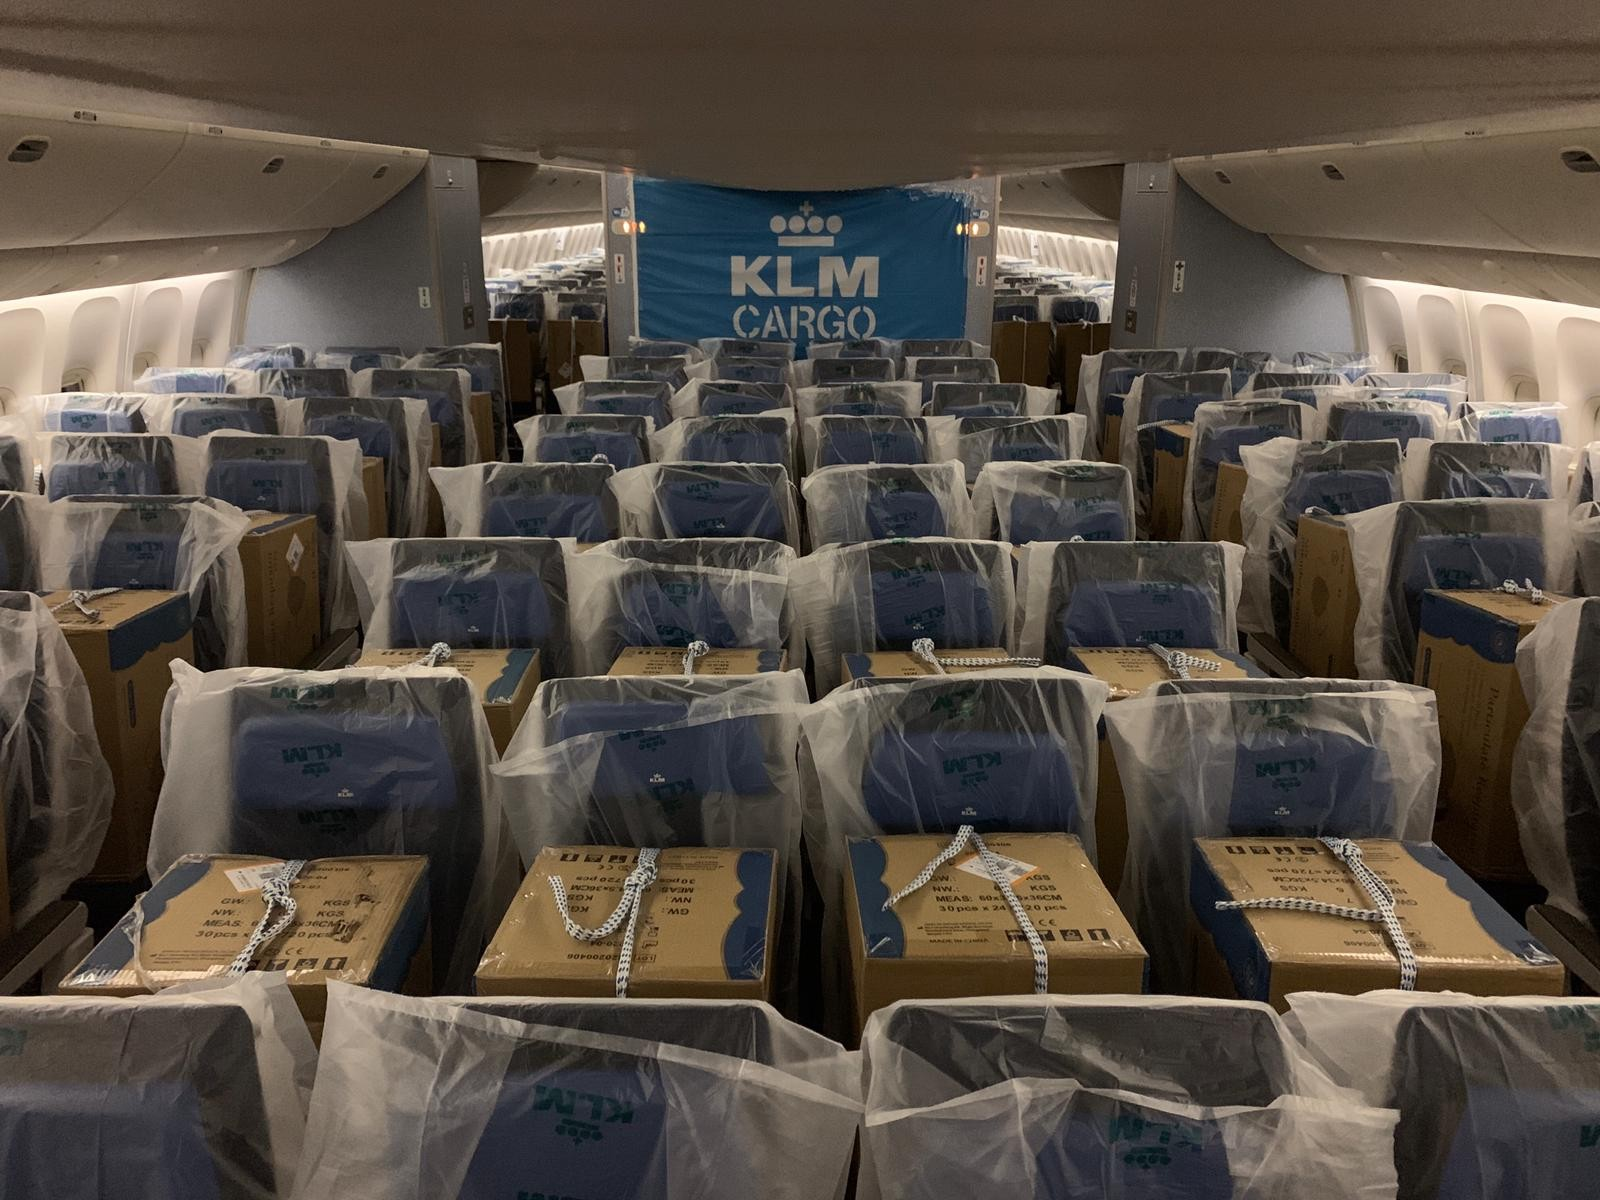 Testbed Vegas - KLM introduces Cargo-in-Cabin: carrying cargo on passenger seats